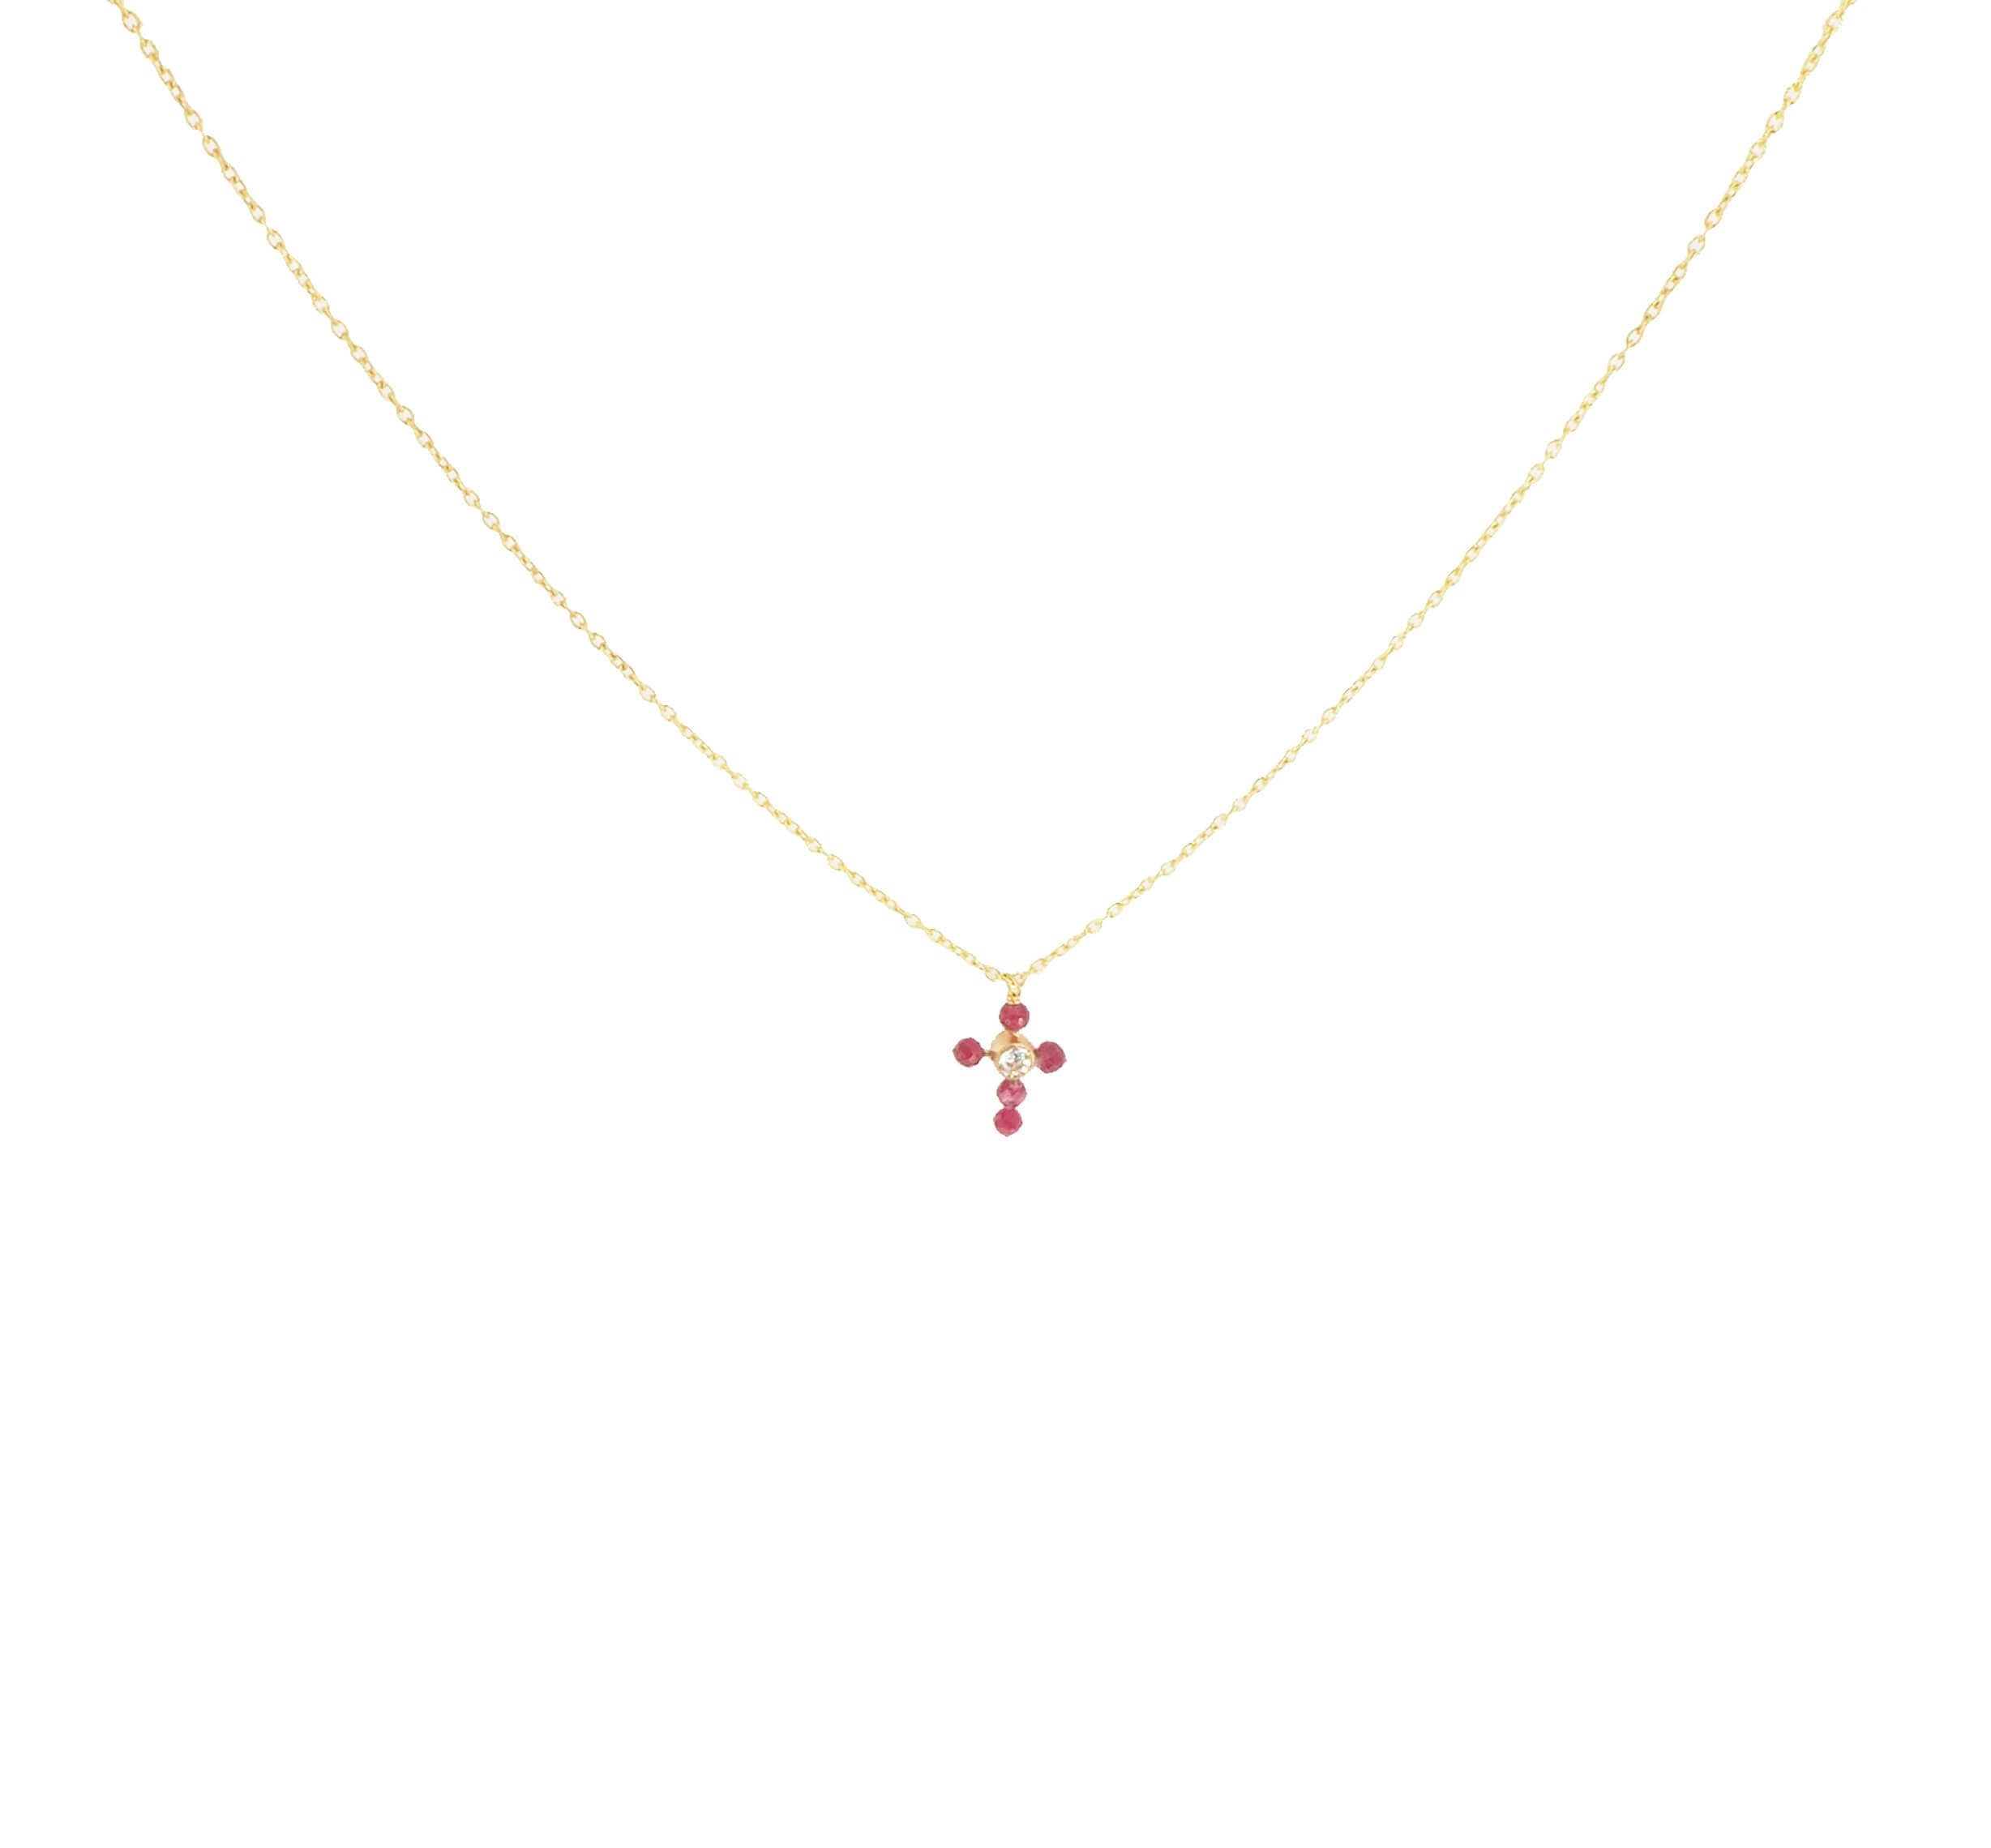 Collier mini croix rubis indien plaqué or - Lucky Team